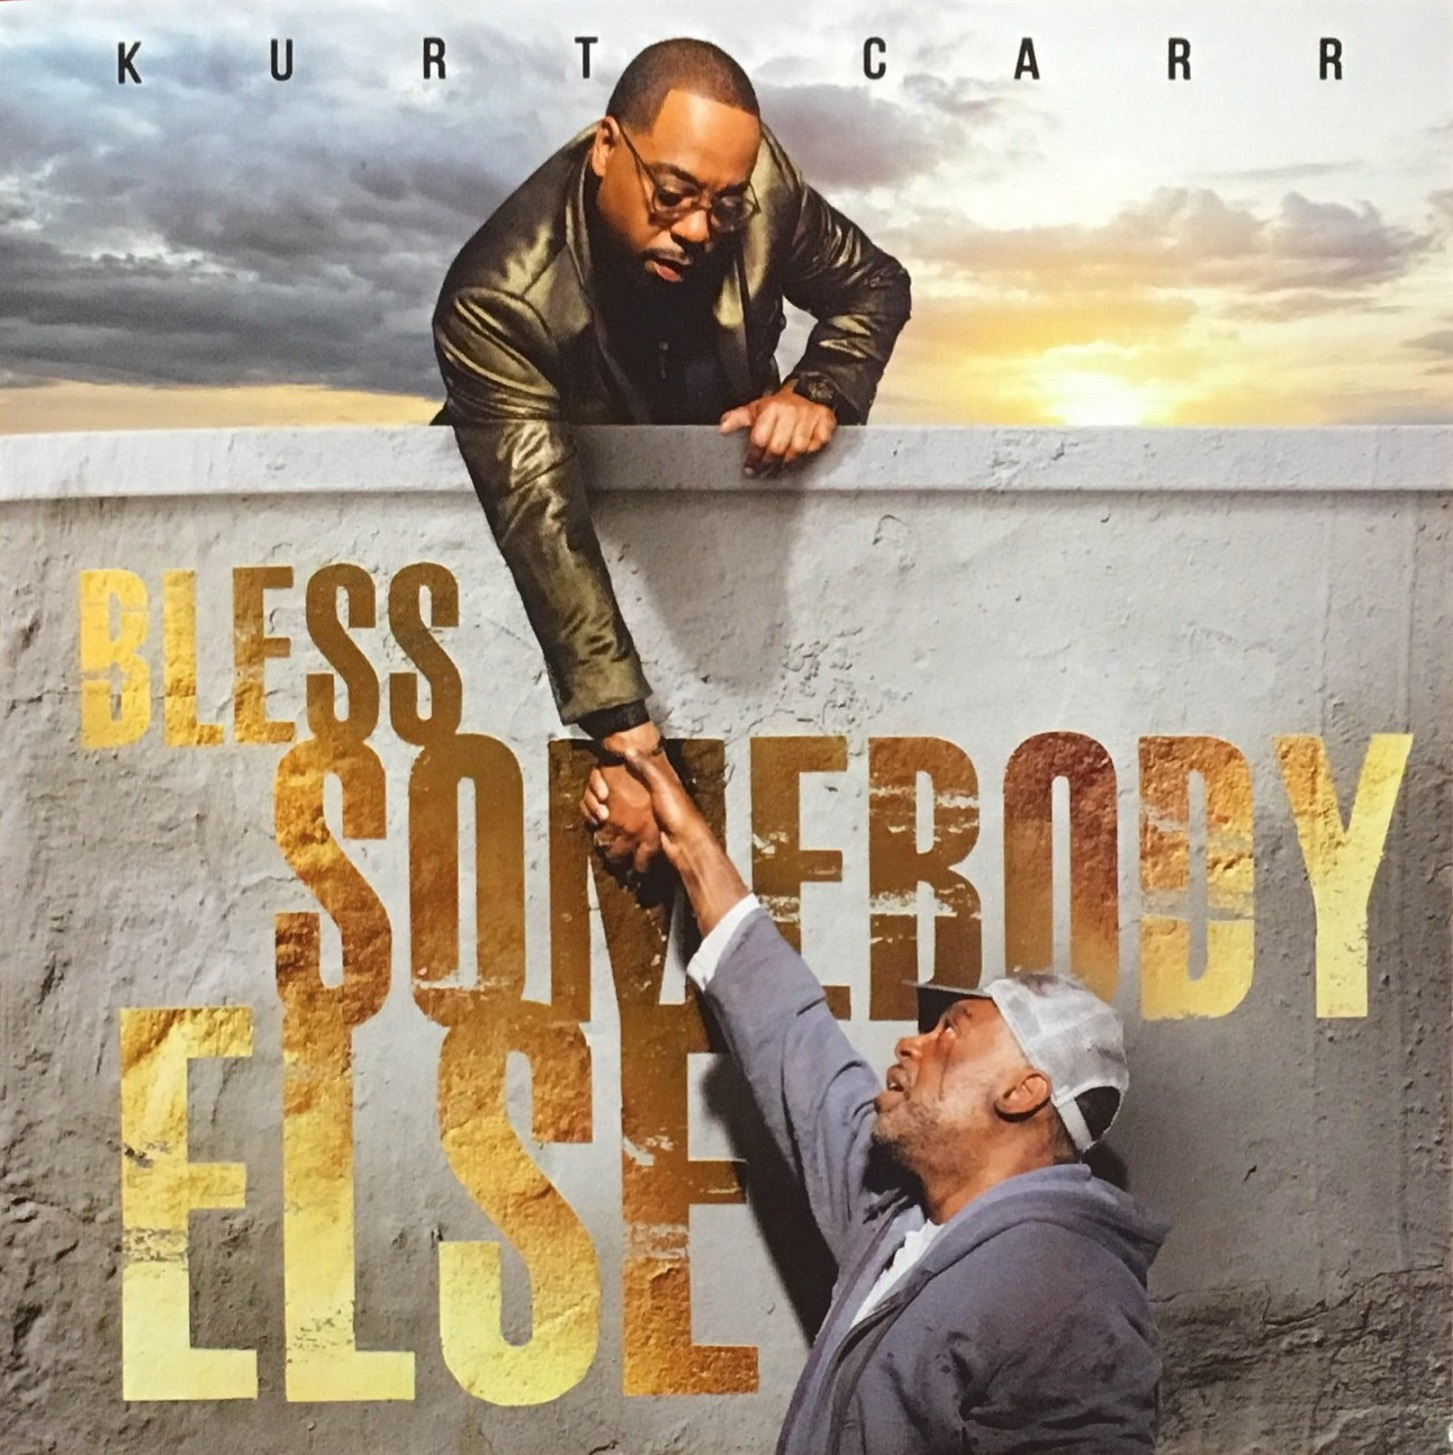 Kurt Carr releases Bless Somebody Else album, out now! – Check Out Interview With uGospel